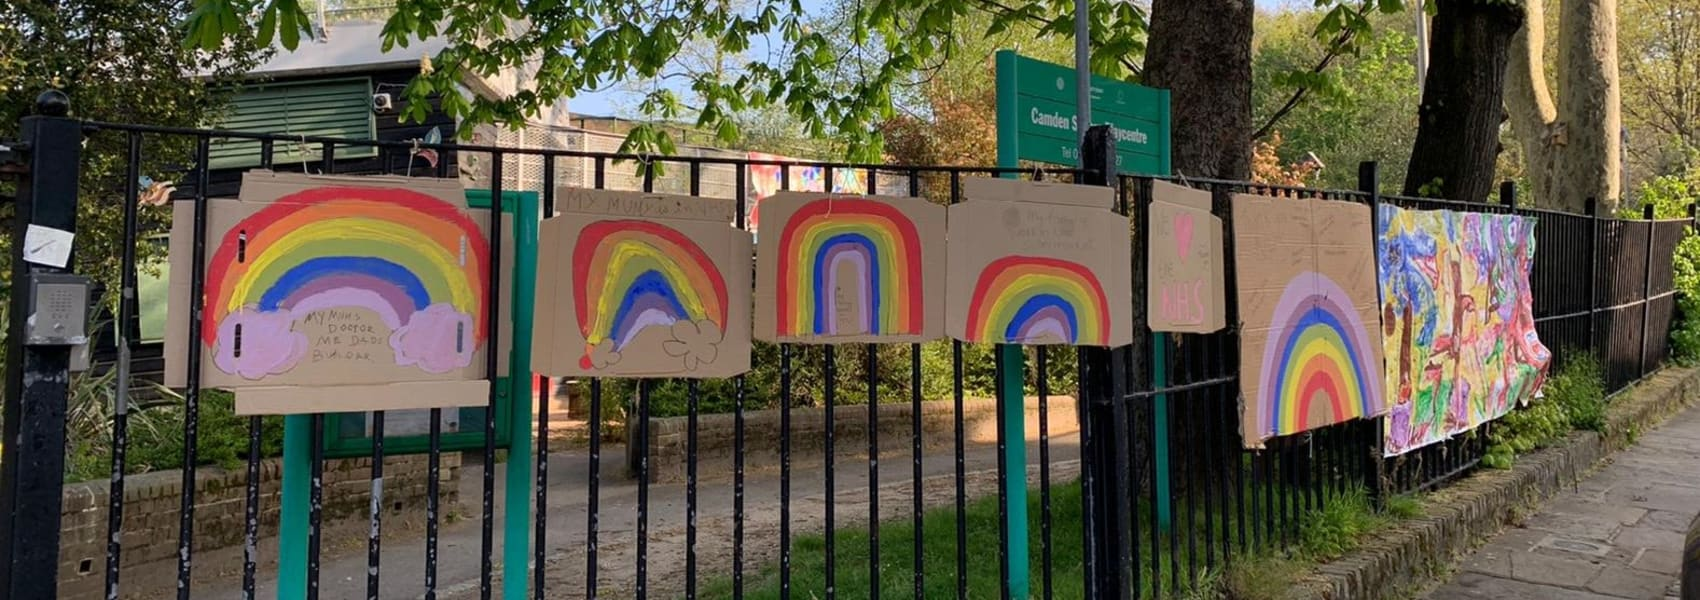 Camden Square Playcentre